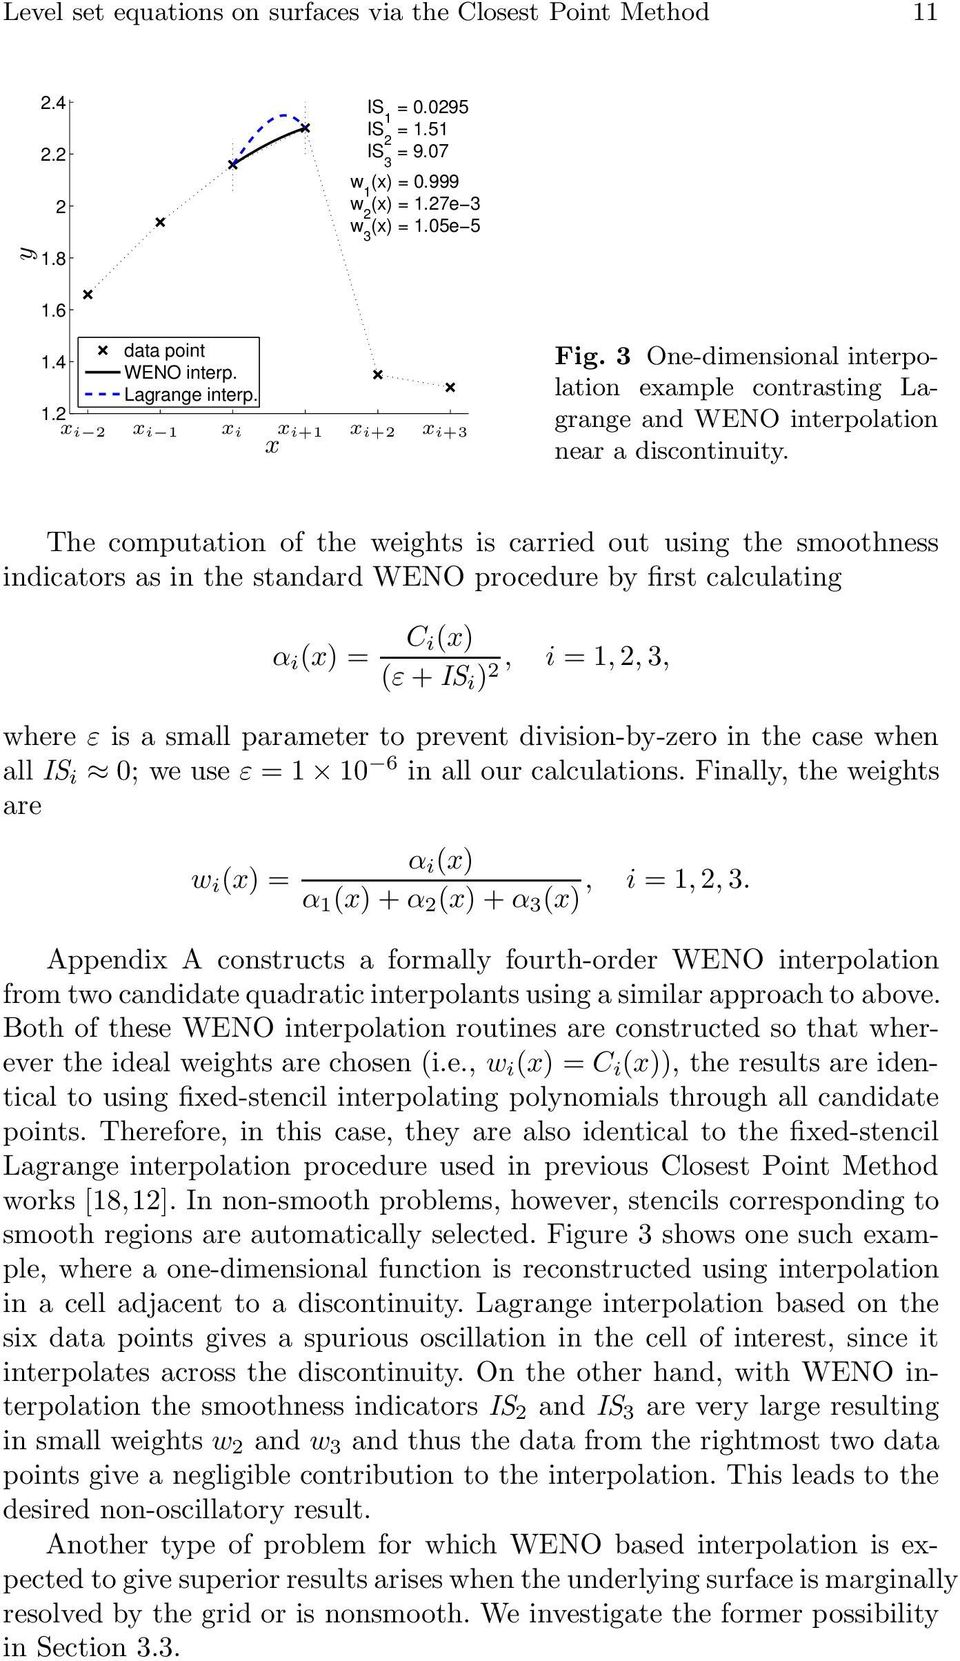 The computation of the weights is carried out using the smoothness indicators as in the standard WENO procedure by first calculating α i (x) = C i(x), i = 1, 2, 3, (ε + IS i ) 2 where ε is a small